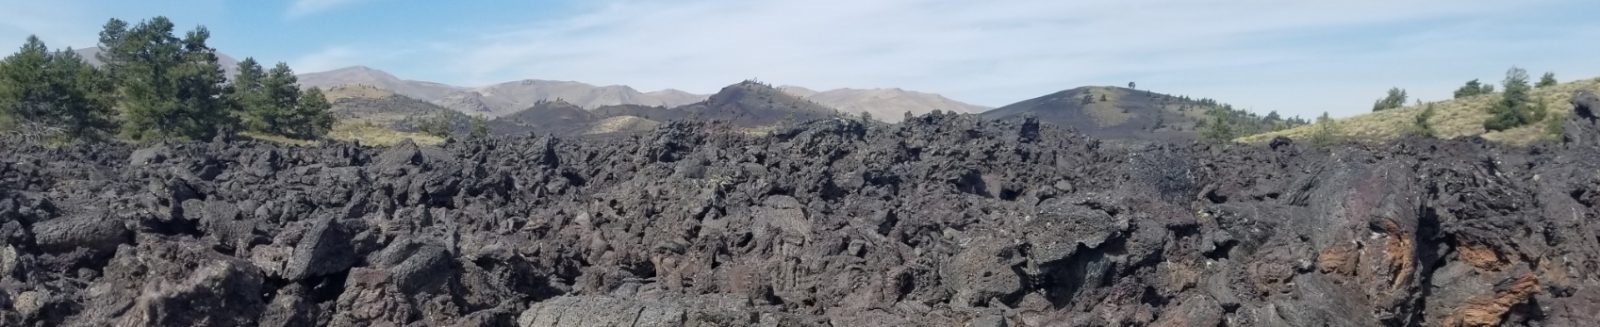 Don't pass up an opportunity to explore the lava fields at Craters of the Moon National Monument